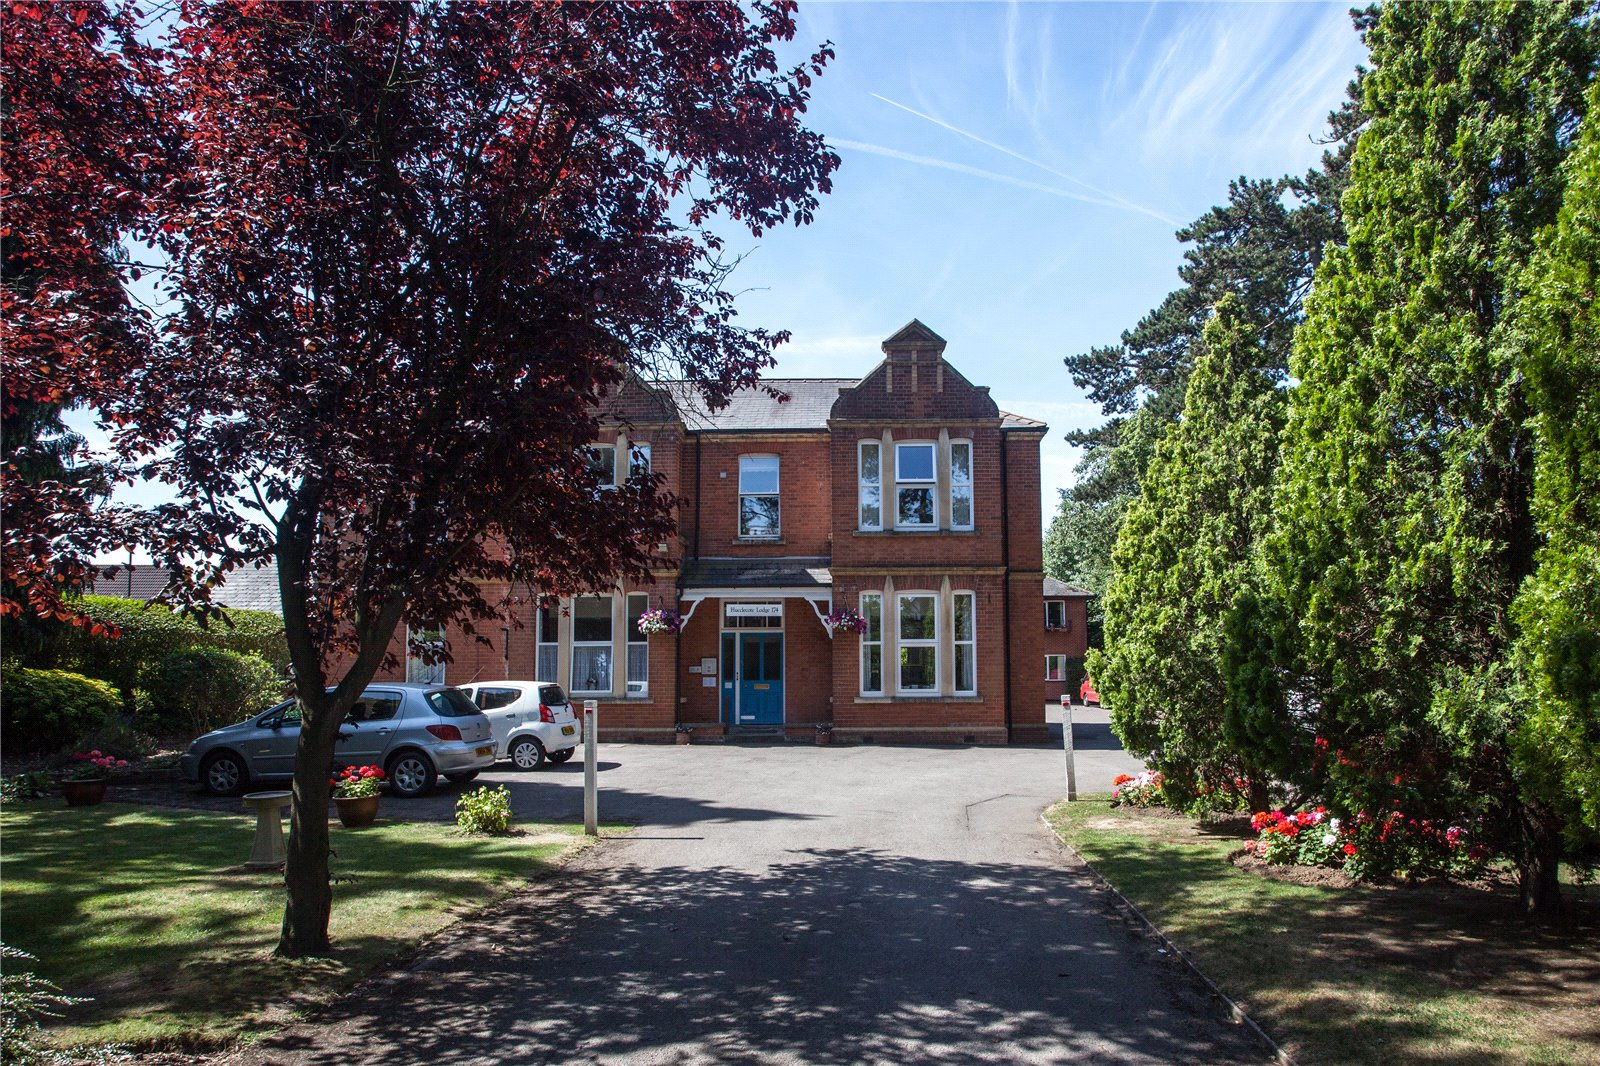 1 Bedroom Flat for sale in Hucclecote Lodge 174 Hucclecote Road Hucclecote GL3